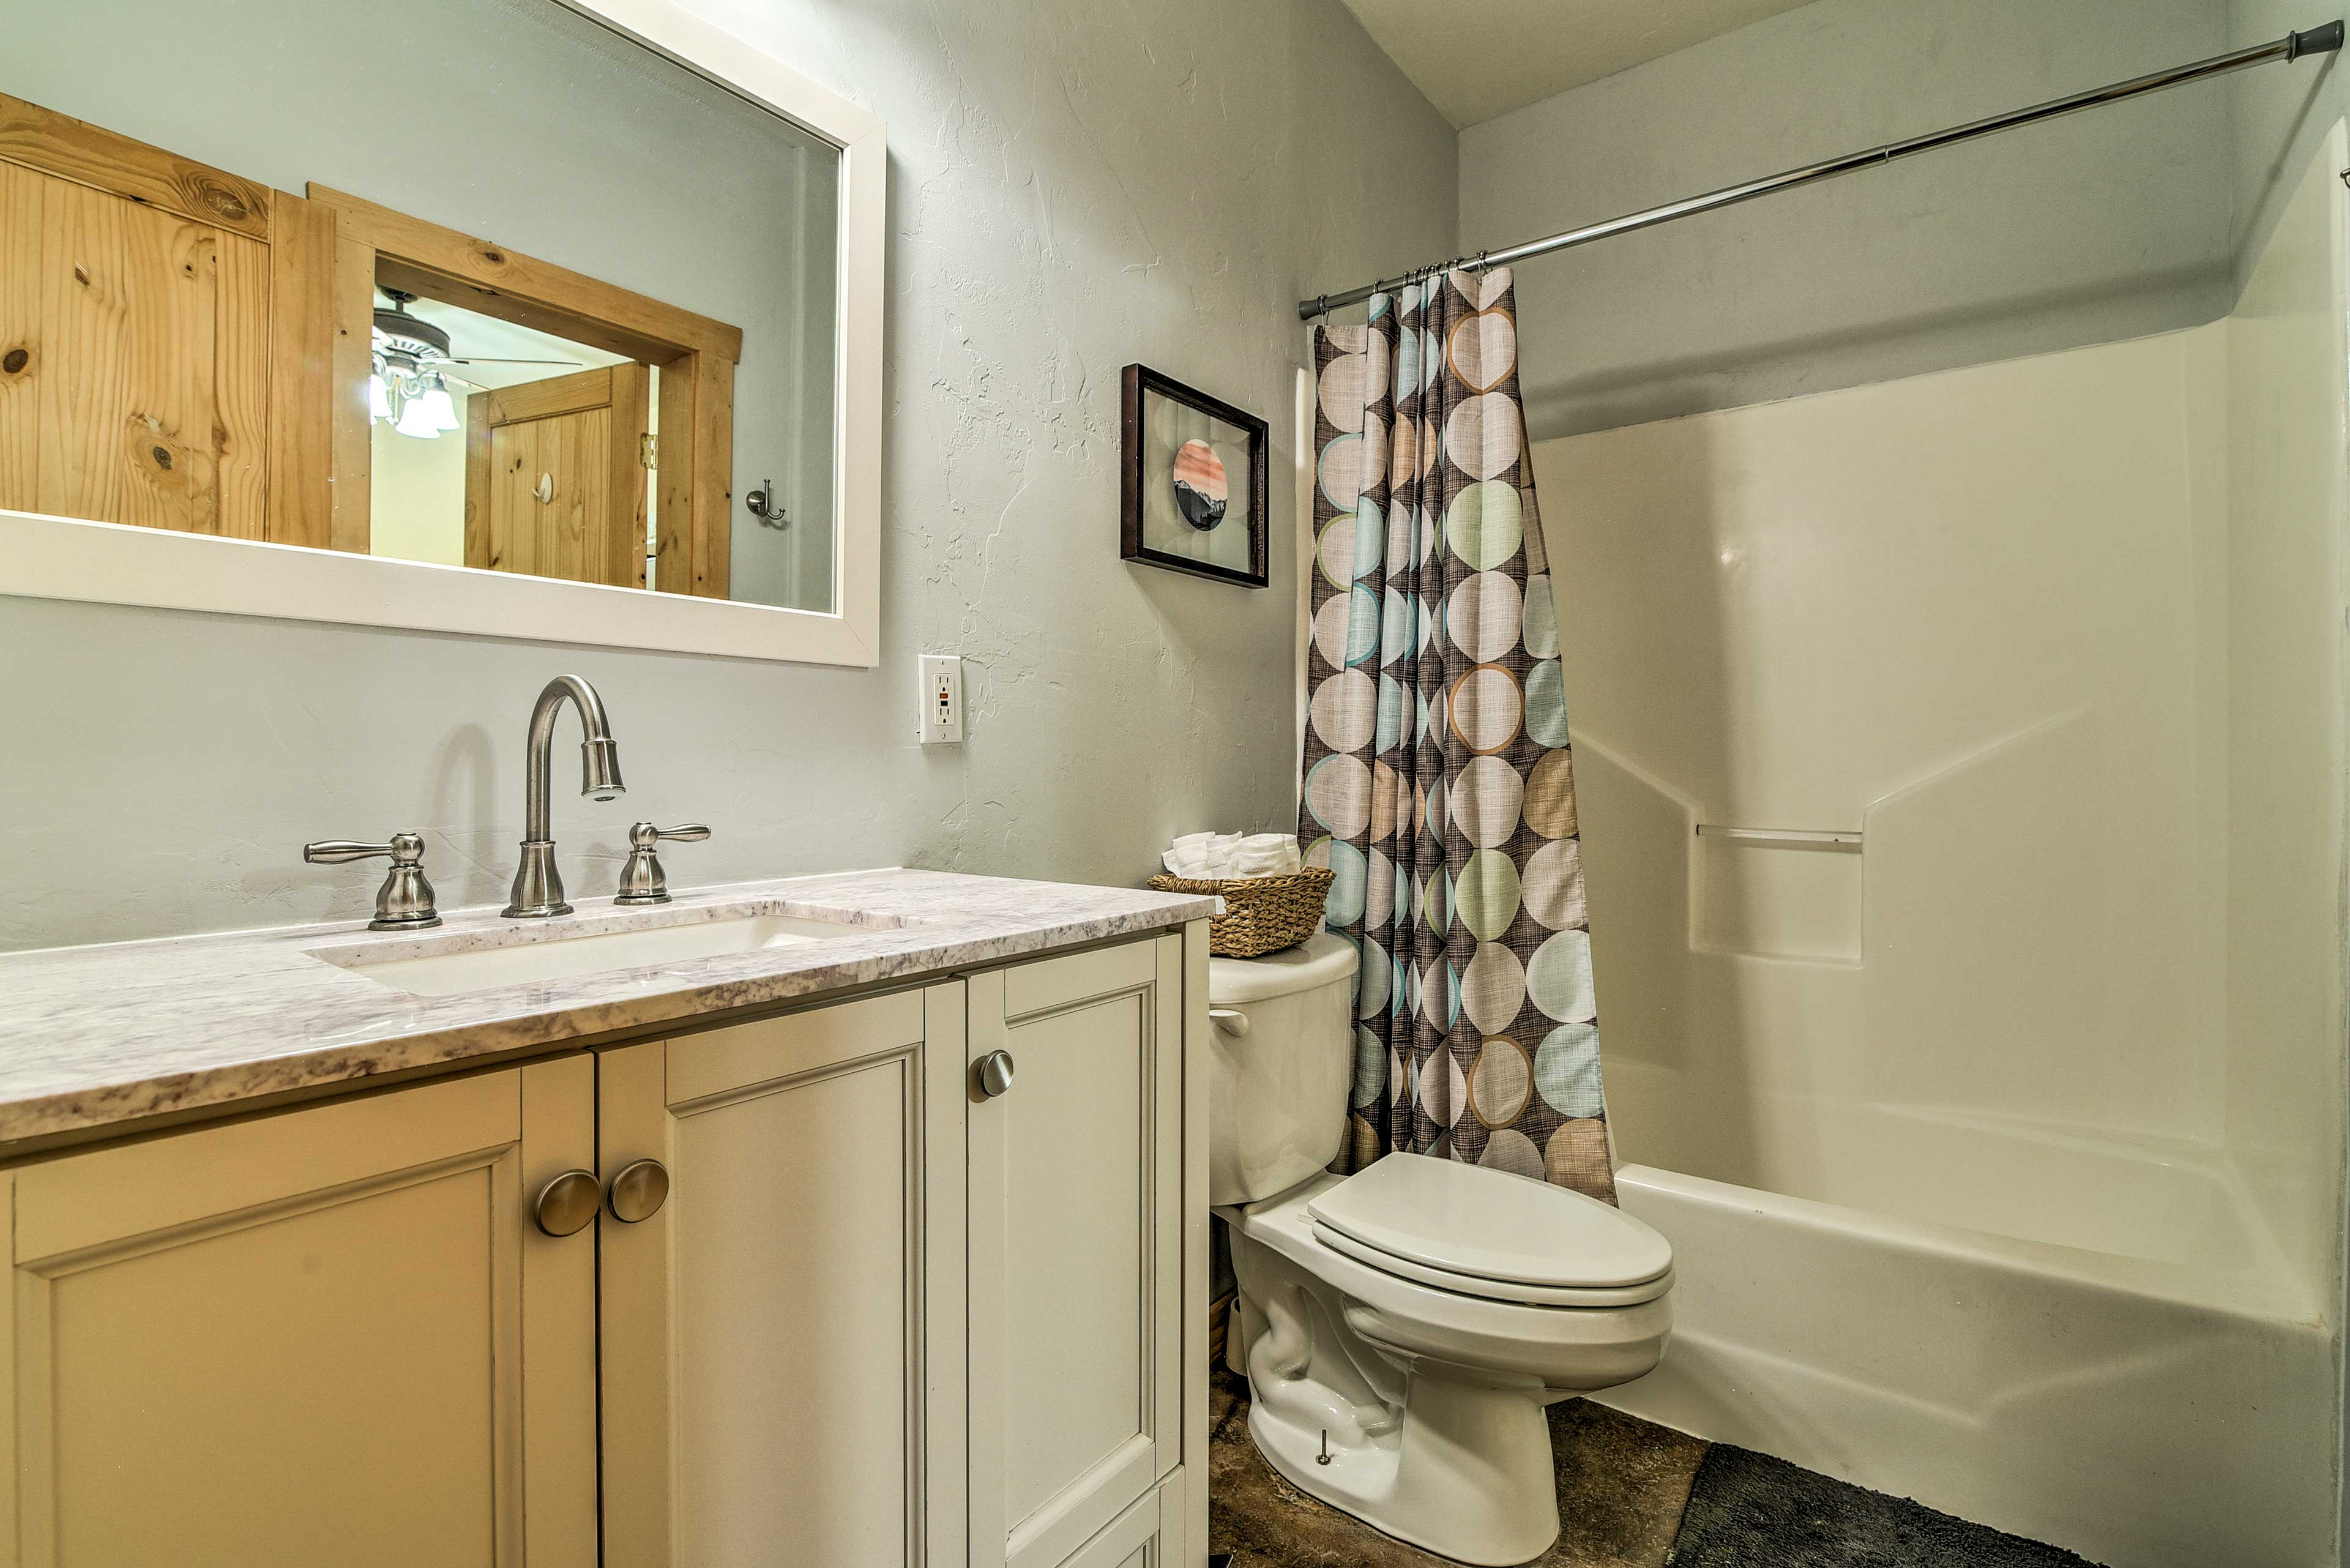 Wash up in the downstairs bathroom before another adventure-filled day!